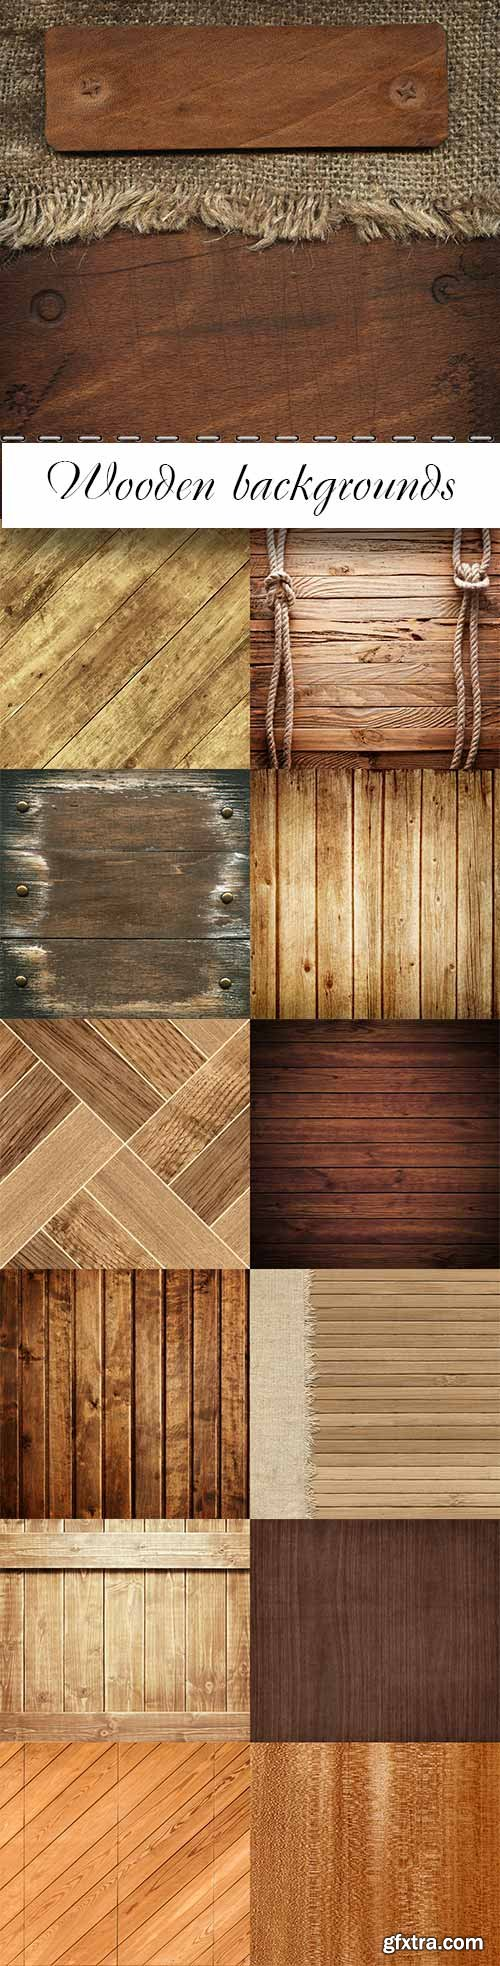 Excellent wood backgrounds